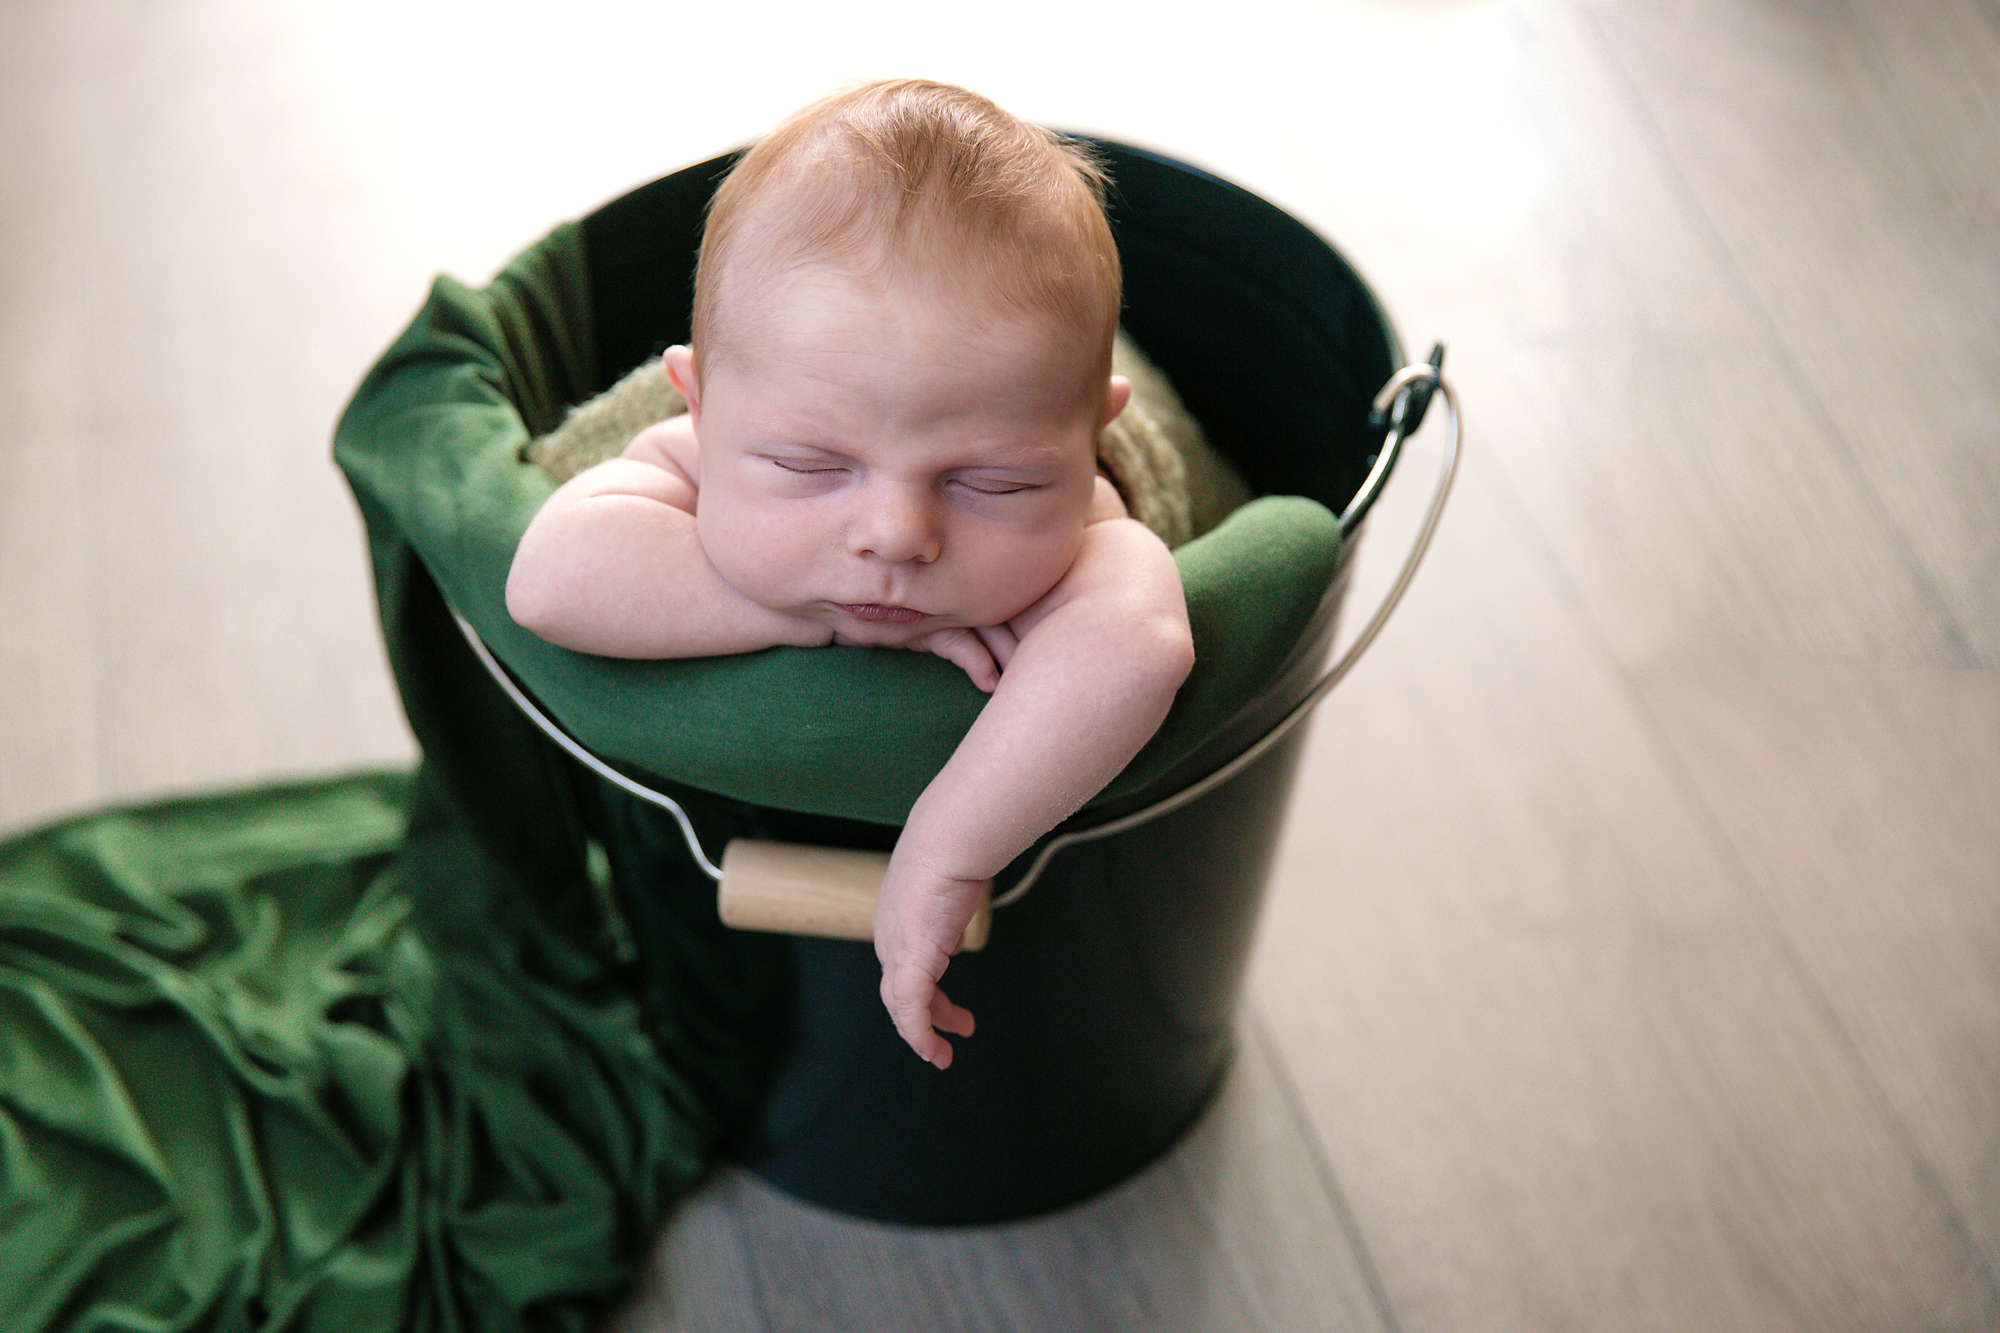 Baby boy in a bucket with his little arm hanging. Baby boy born on St. Patricks day - green bucket and green wrap. Newborn Photoshoot ideas. Baby born on St. Patrick's day ideas. Calgary Newborn Photographer